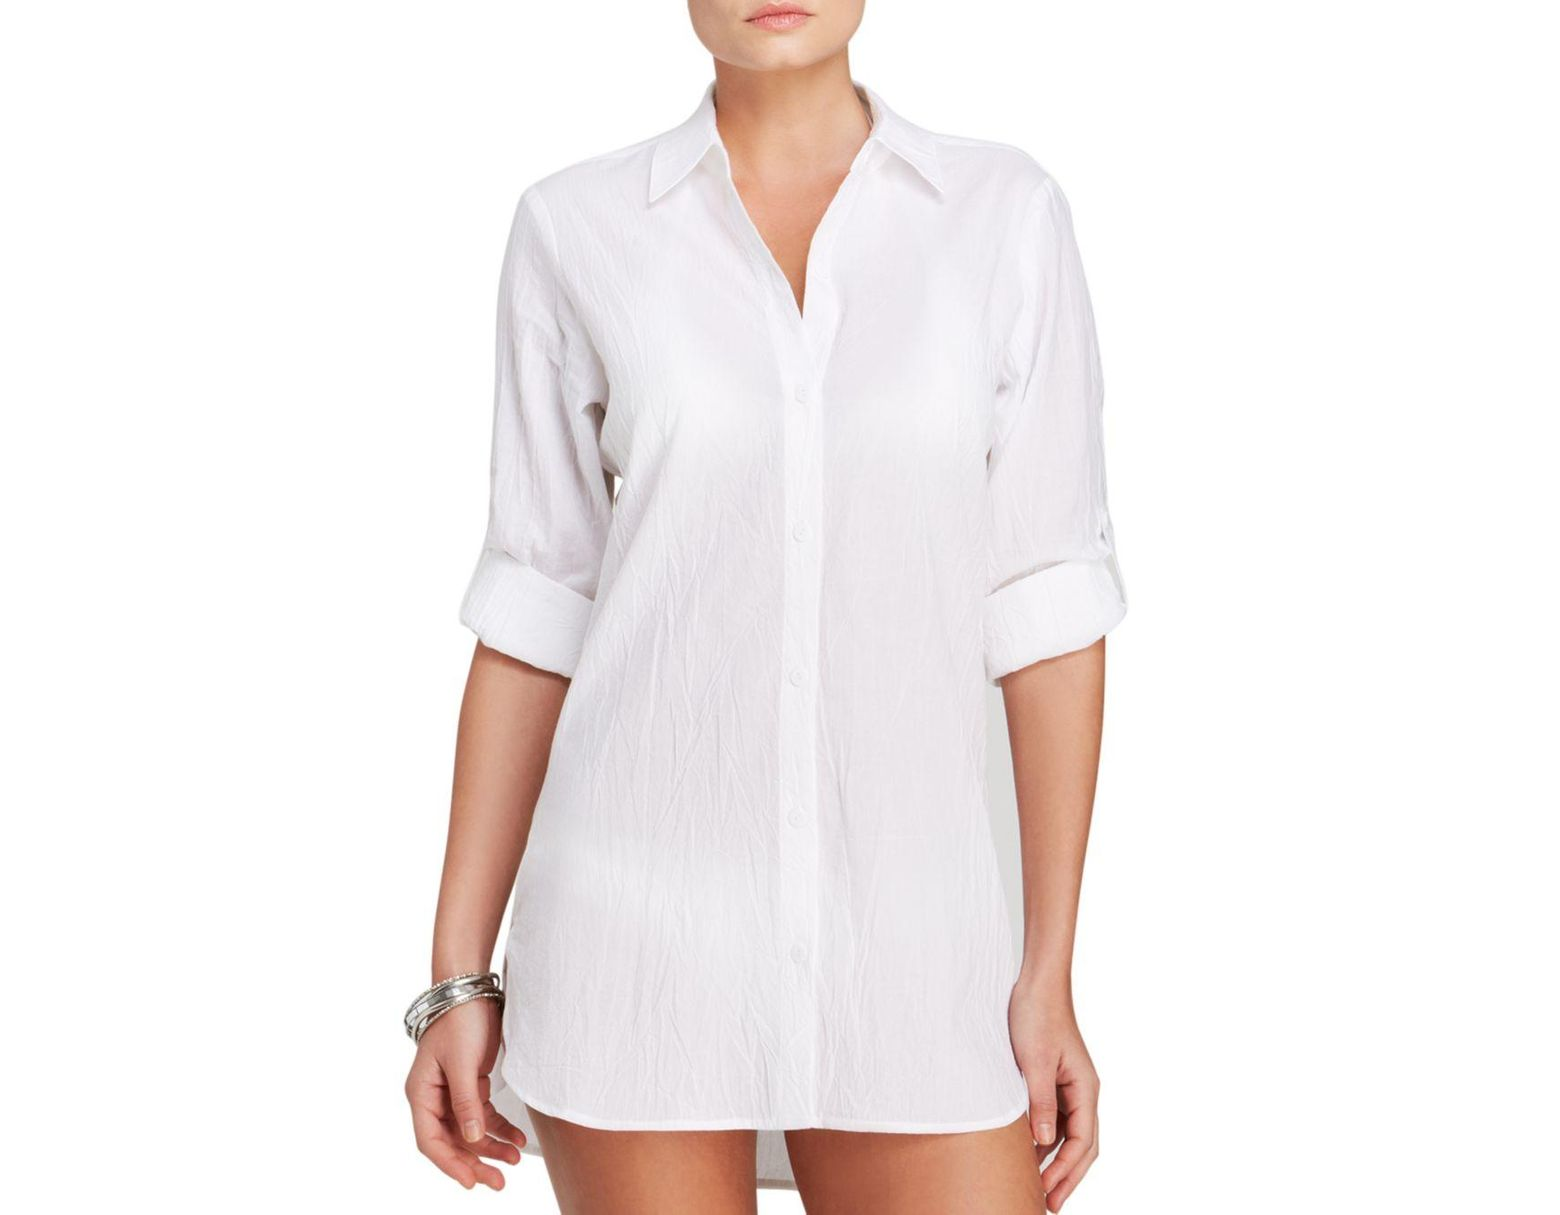 d7bcdee7b2 Tommy Bahama Crinkle Boyfriend Shirt Swim Cover - Up in White - Lyst